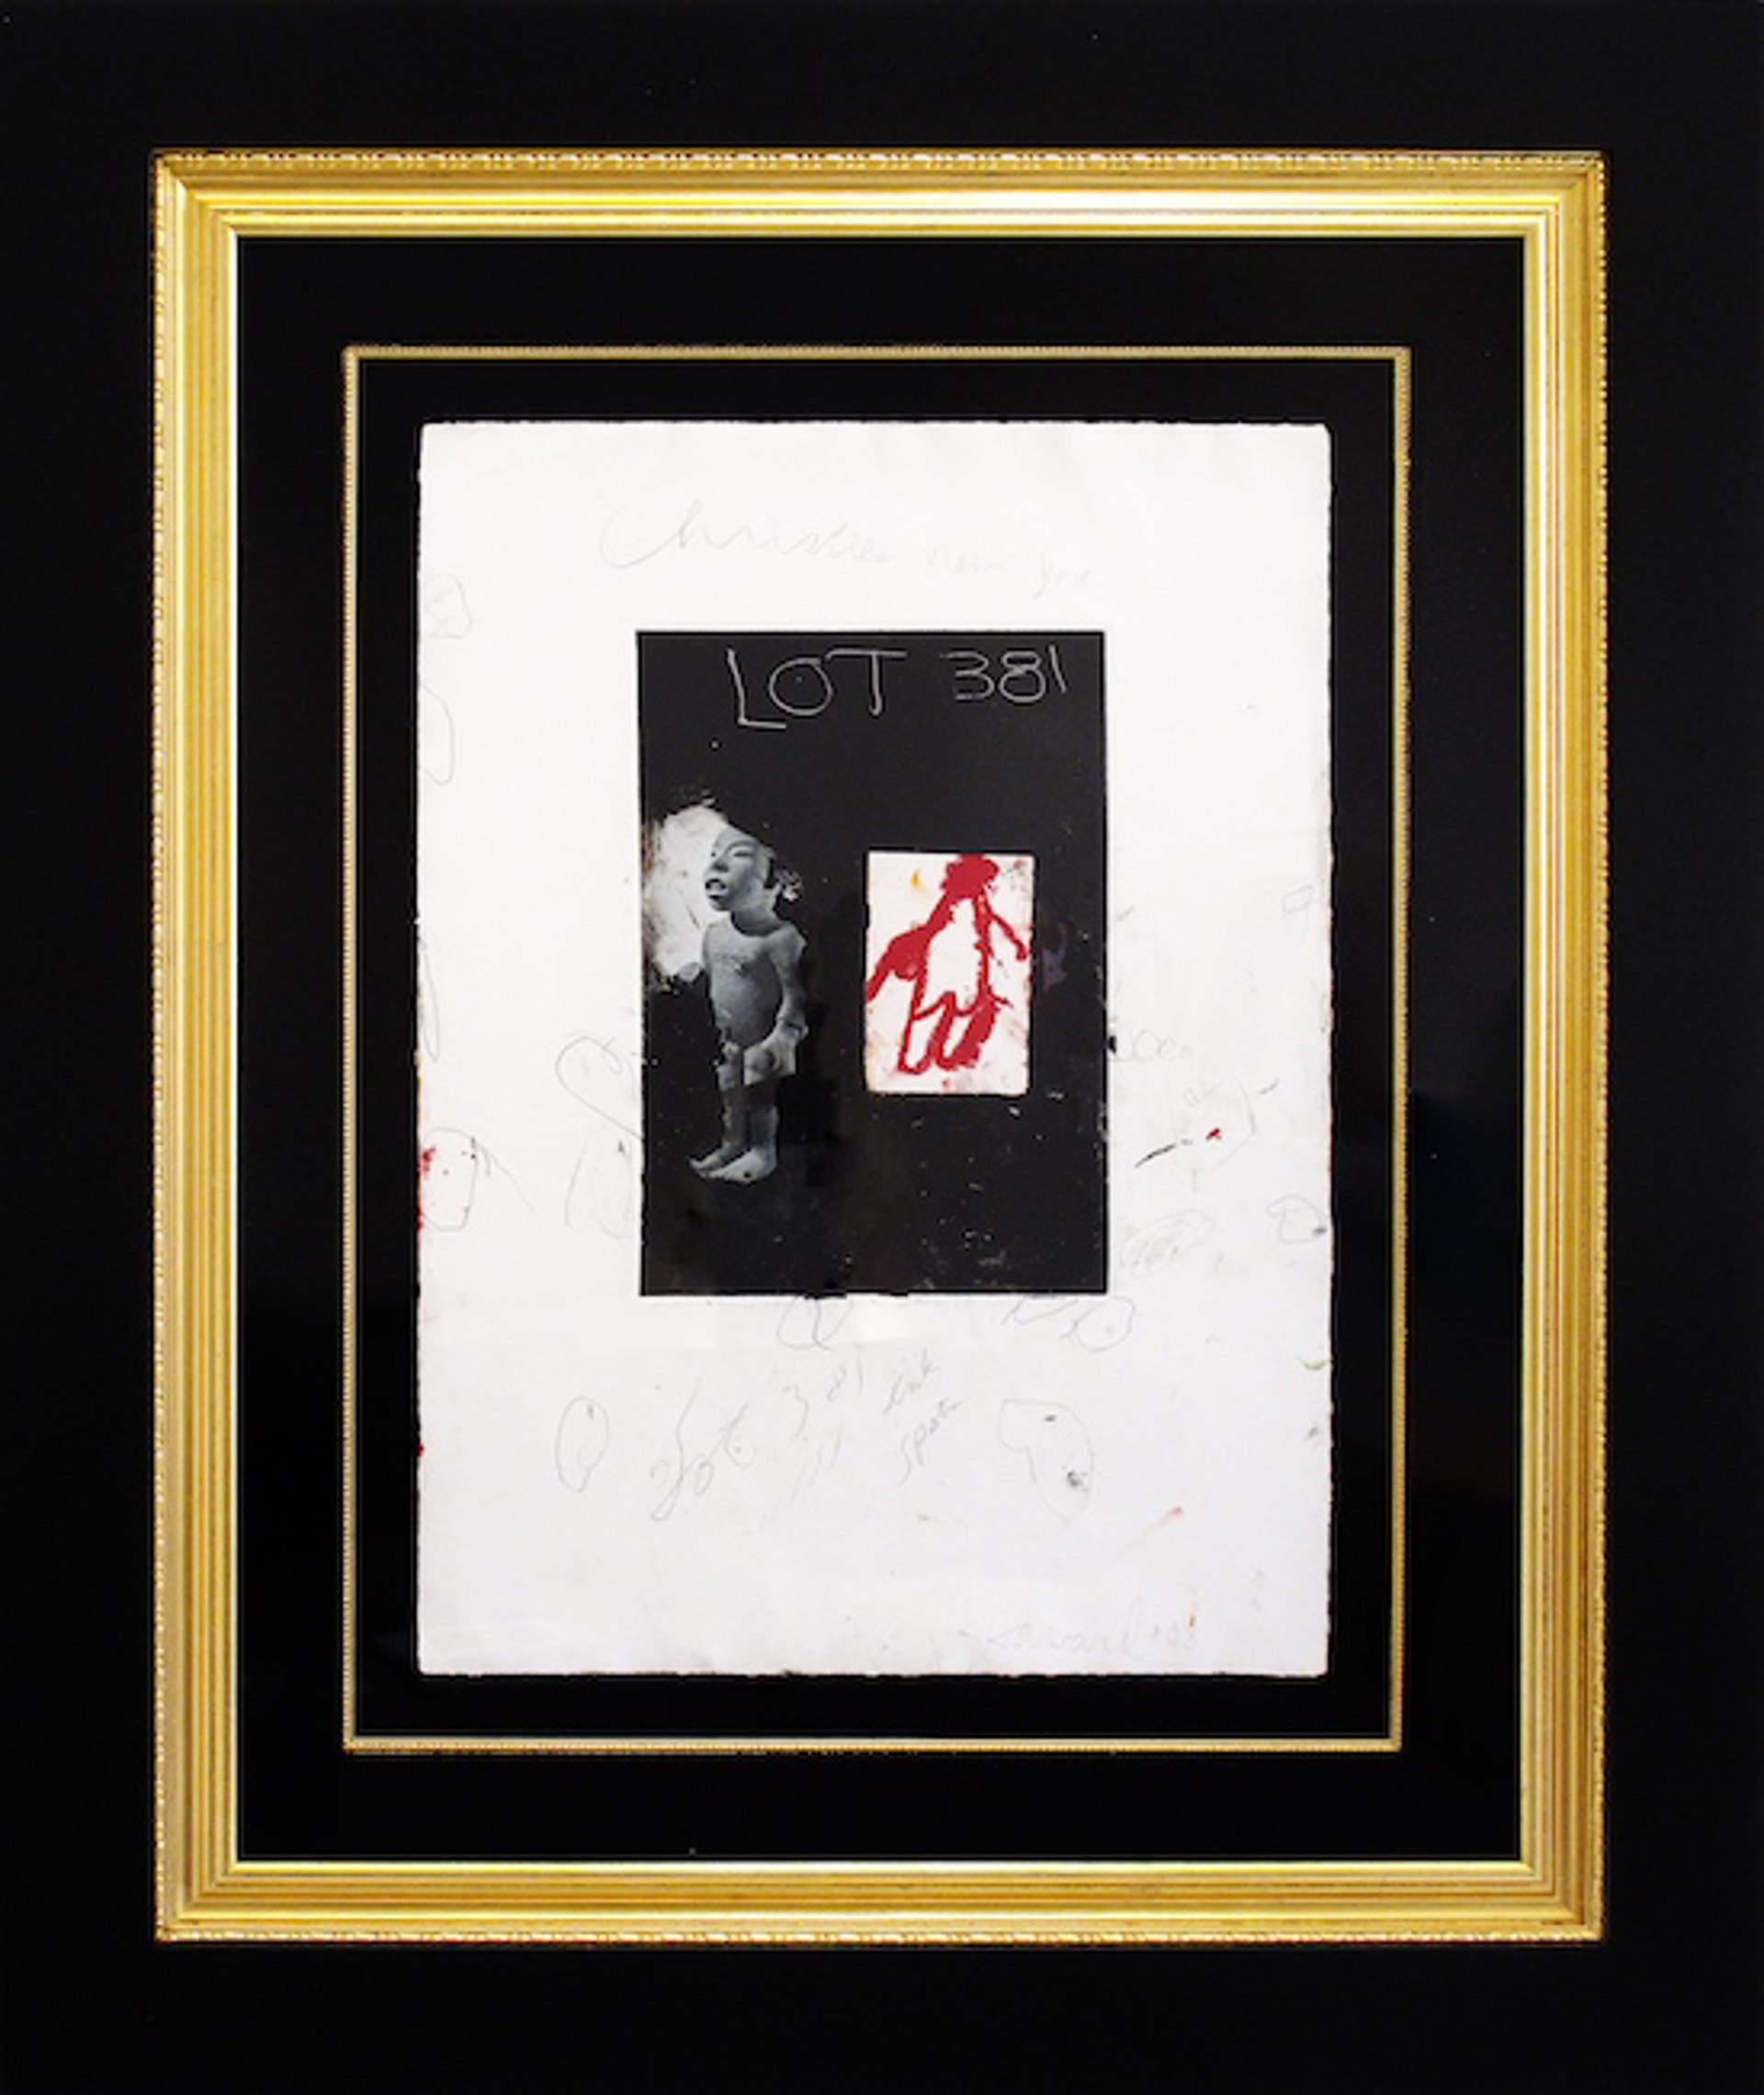 Lot 381 with Ink Spots by James Havard